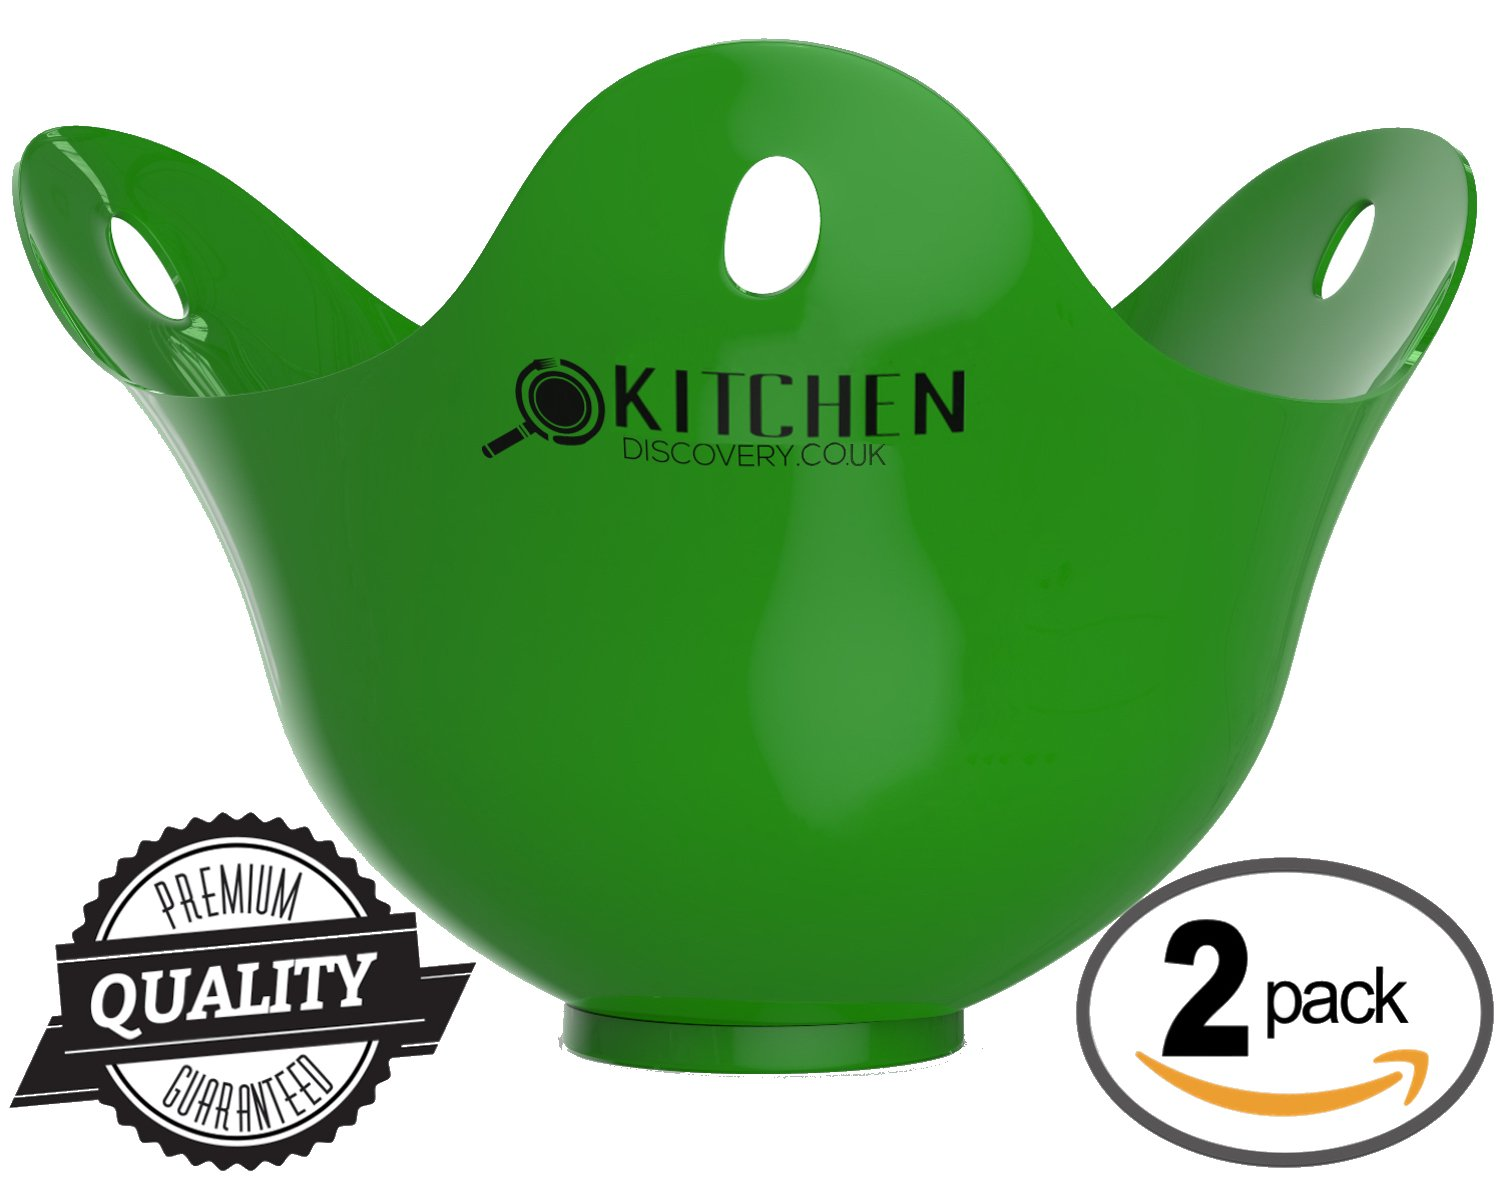 Egg Poacher - 2 pack For Cooking Poached Eggs -LIFETIME GUARANTEE! Best Quality PoachPods, Silicone Egg Poachers For Cooking That Perfect Poached Egg. Quick and Easy To Use, Cooked Eggs in Minutes!! These Revolutionary Egg Poachers Are The Future Of Easy